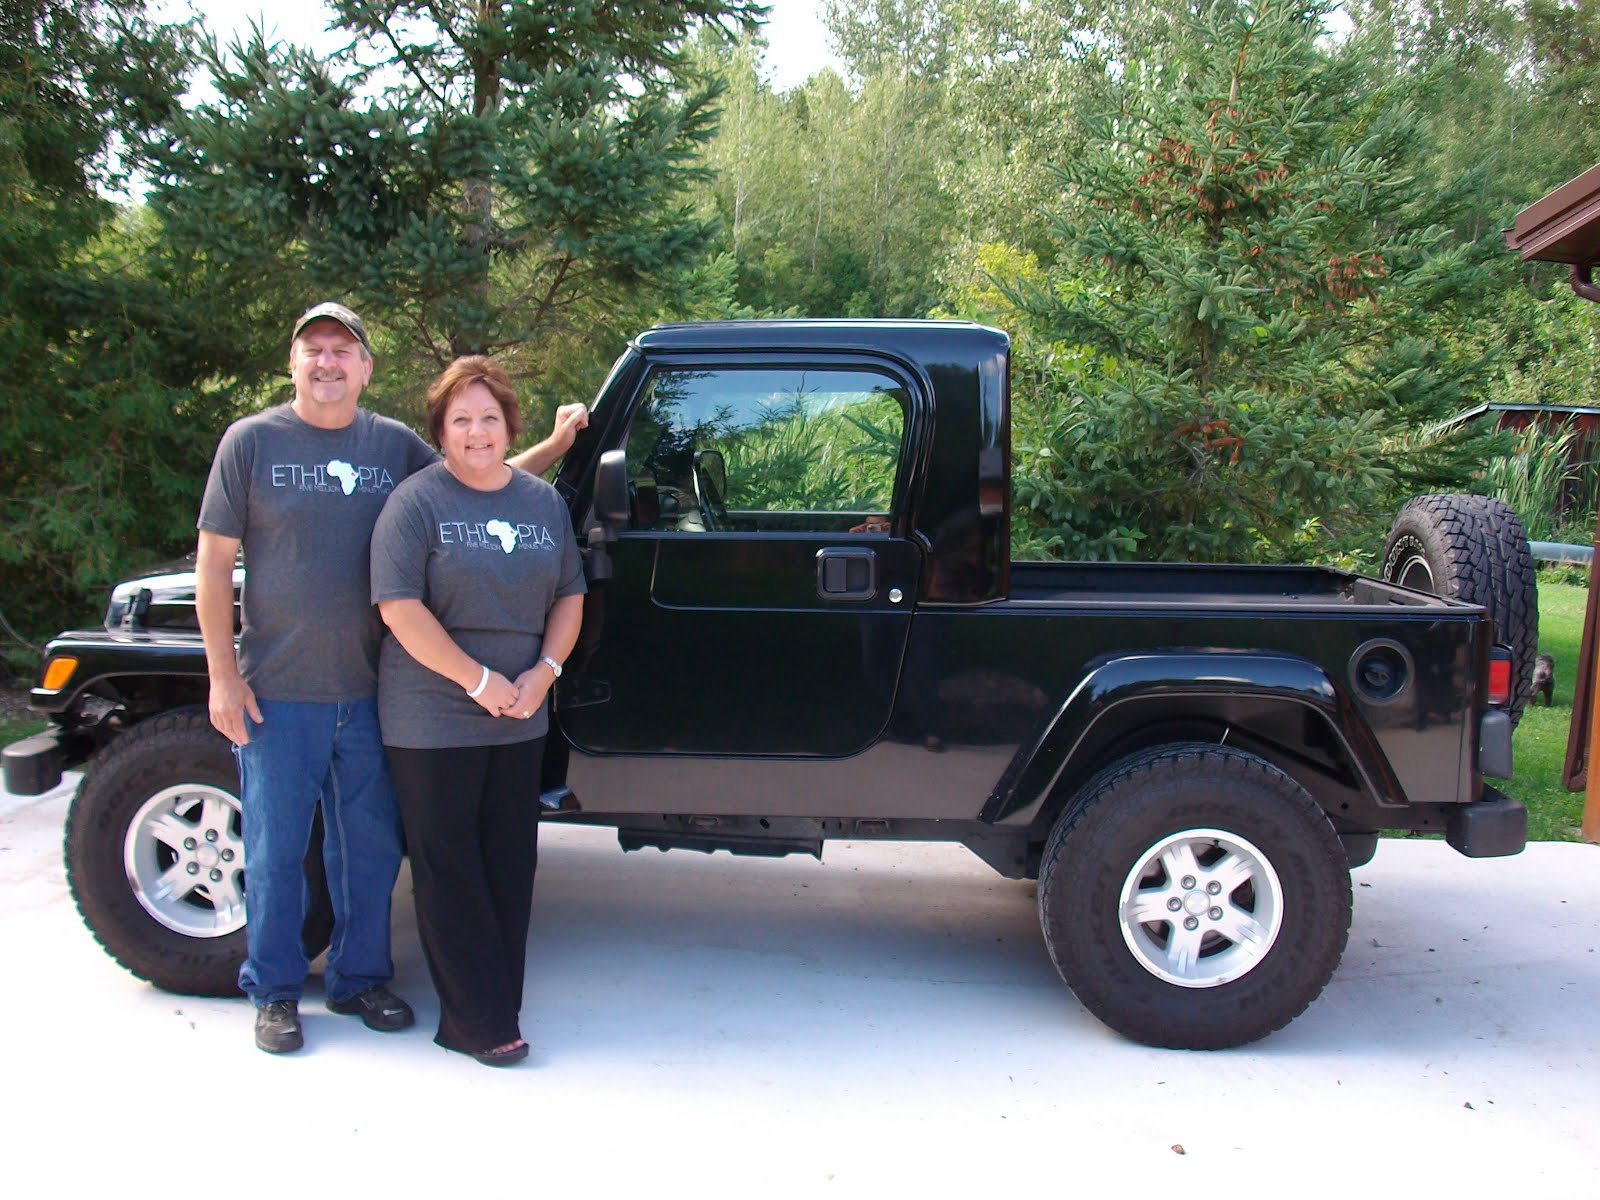 An Ethiopian Adoption Story The Blaine Addition Jeep JK8 Project